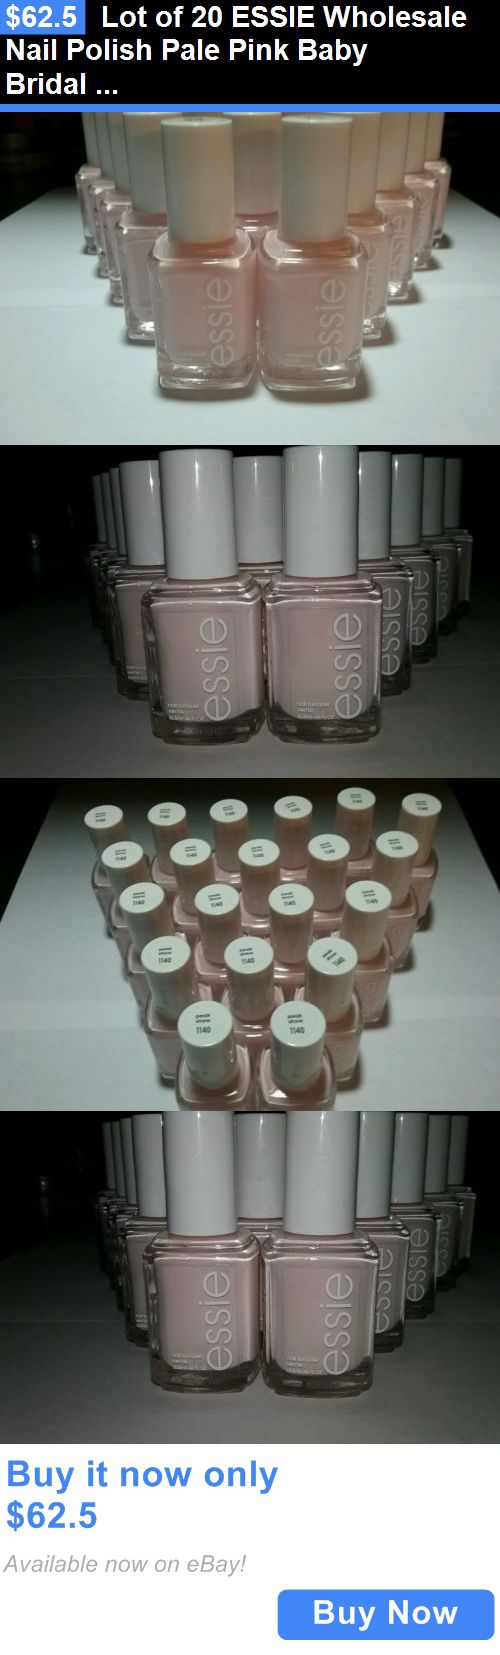 Nail Polish: Lot Of 20 Essie Wholesale Nail Polish Pale Pink Baby Bridal Shower Party Favor BUY IT NOW ONLY: $62.5